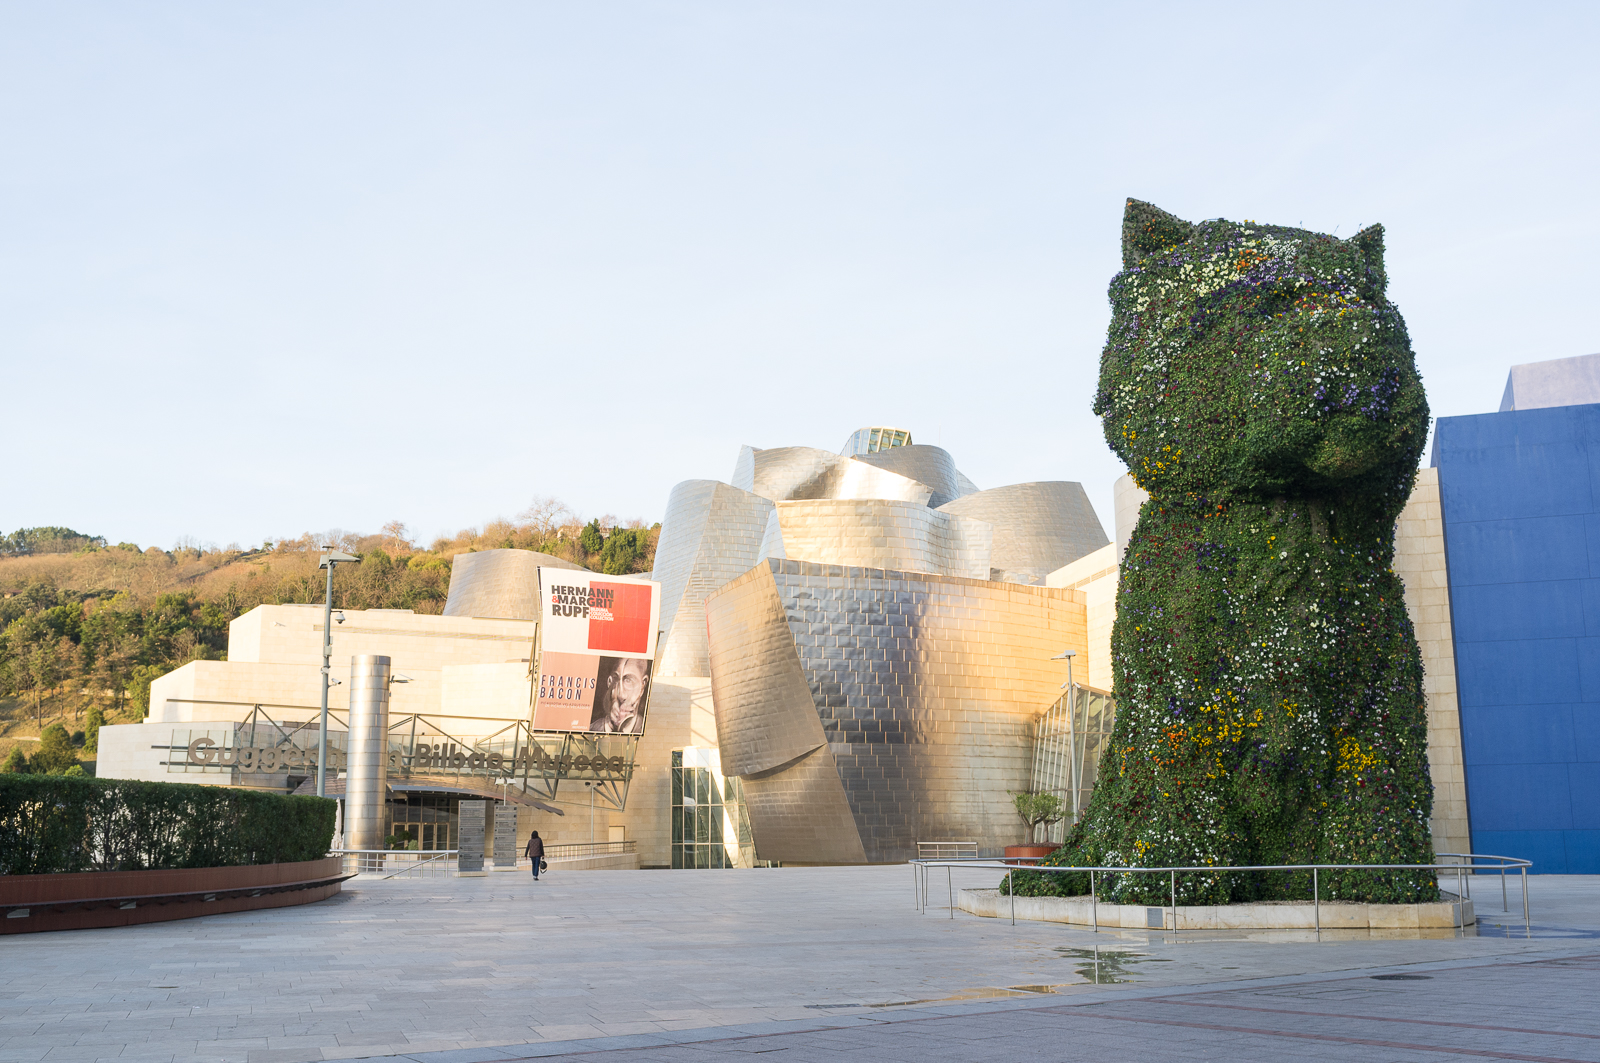 Jeff Koons' famous puppy, Bilbao - Spain